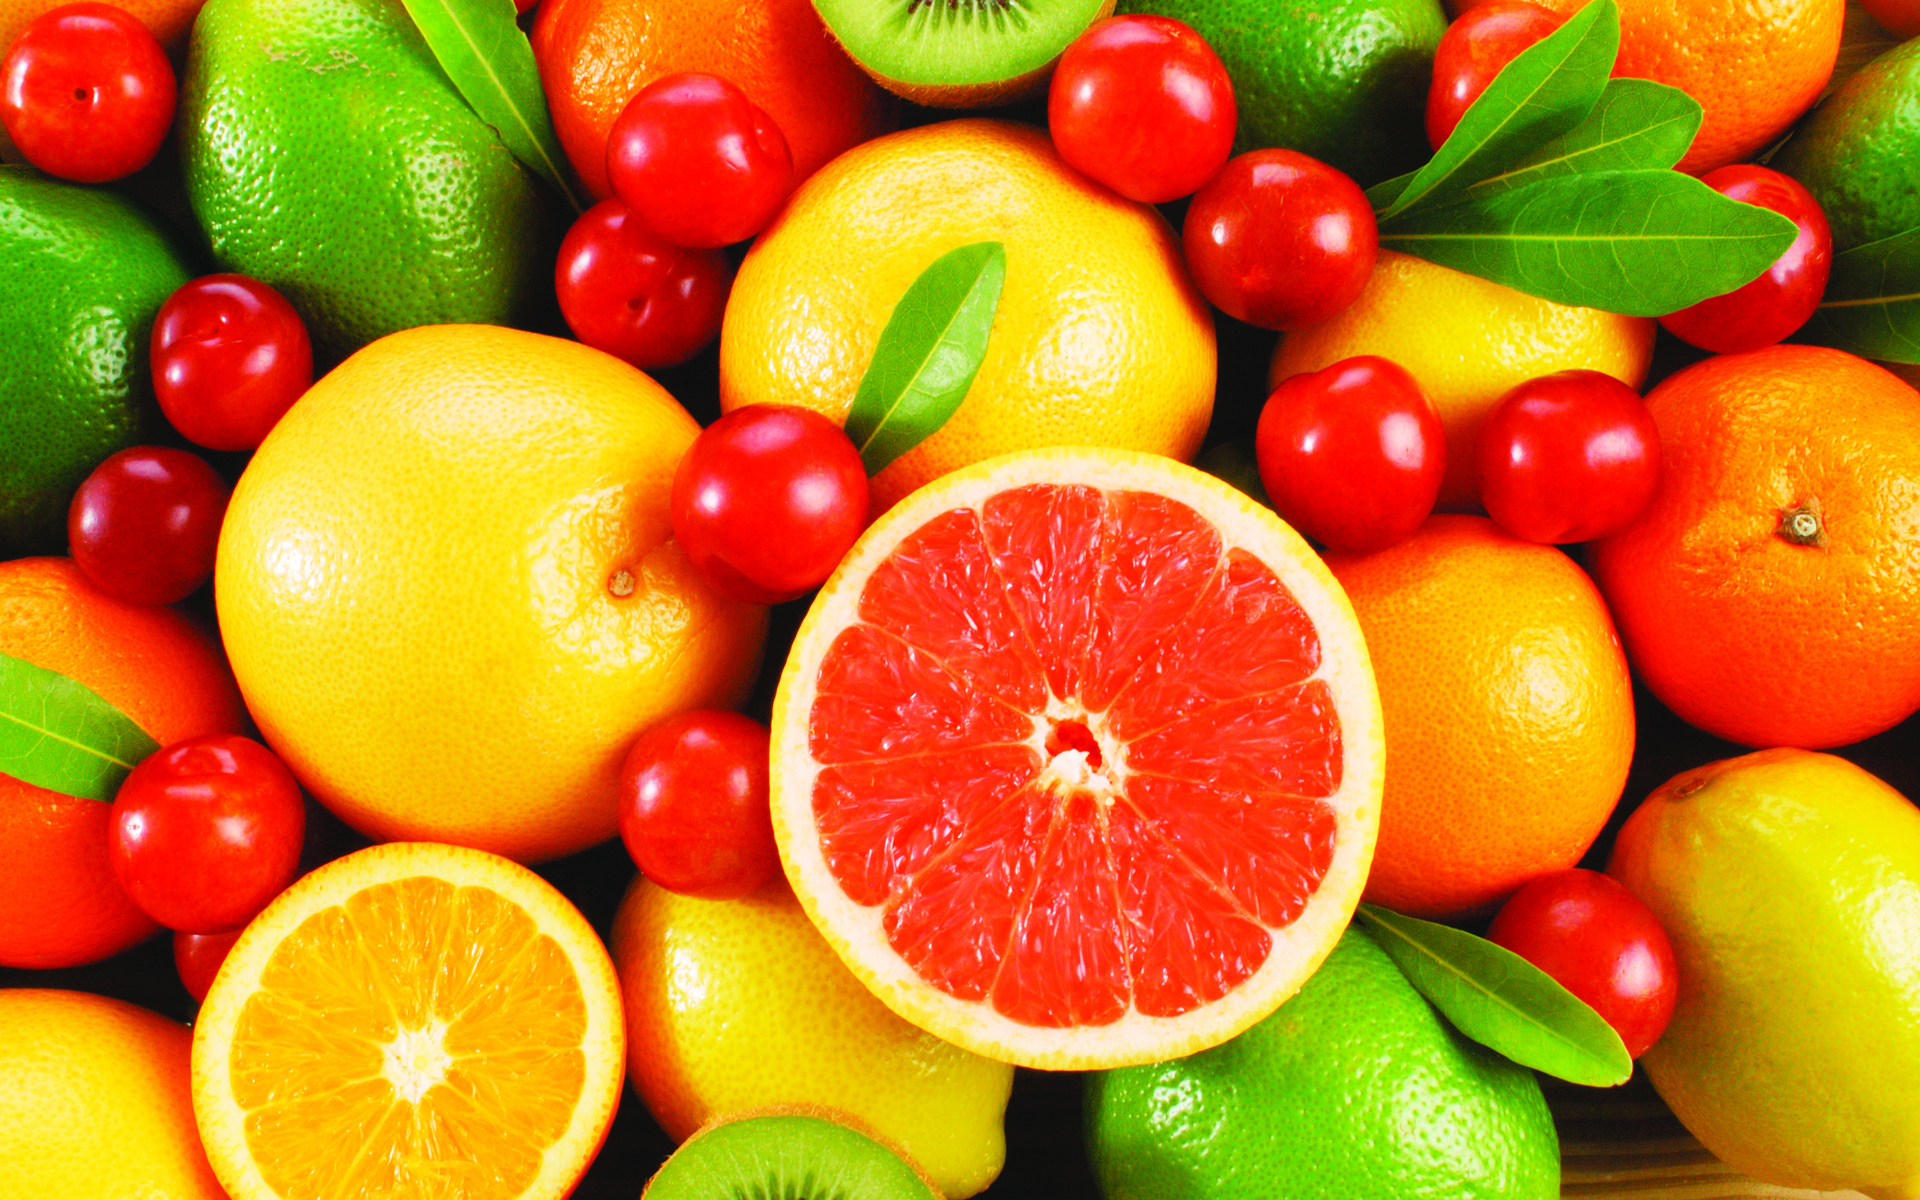 Colorful Fruit Wallpaper